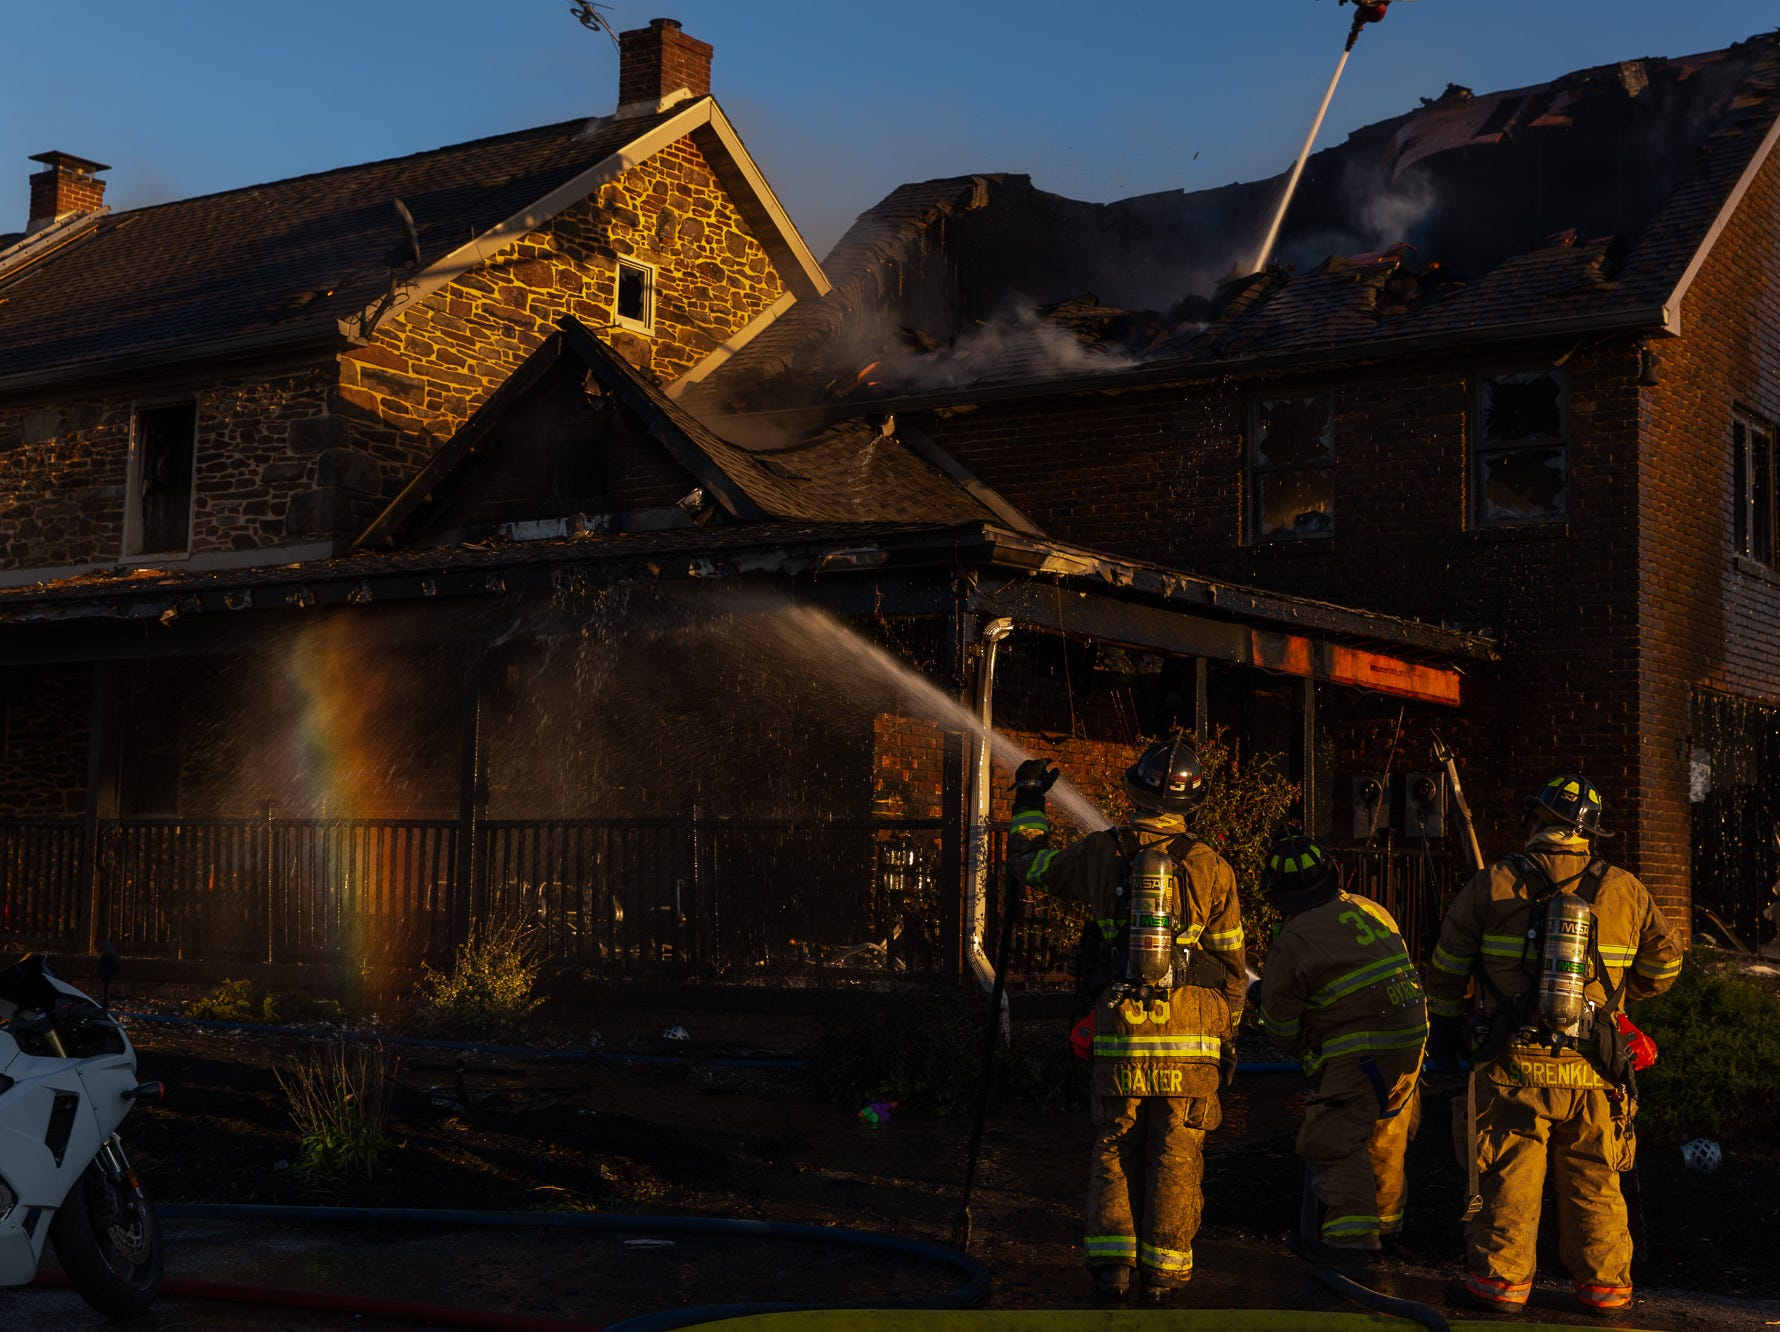 A rainbow forms as firefighters hose down the scene of a second-alarm heavily engulfed house fire with entrapment on the 800 block of Two Taverns Road, Saturday, Nov. 3, 2018, in Mount Pleasant Township. Firefighters rescued a young child from the second floor of the house while facing heavy wind-driven fire, said United Hook and Ladder Chief Steve Rabine.